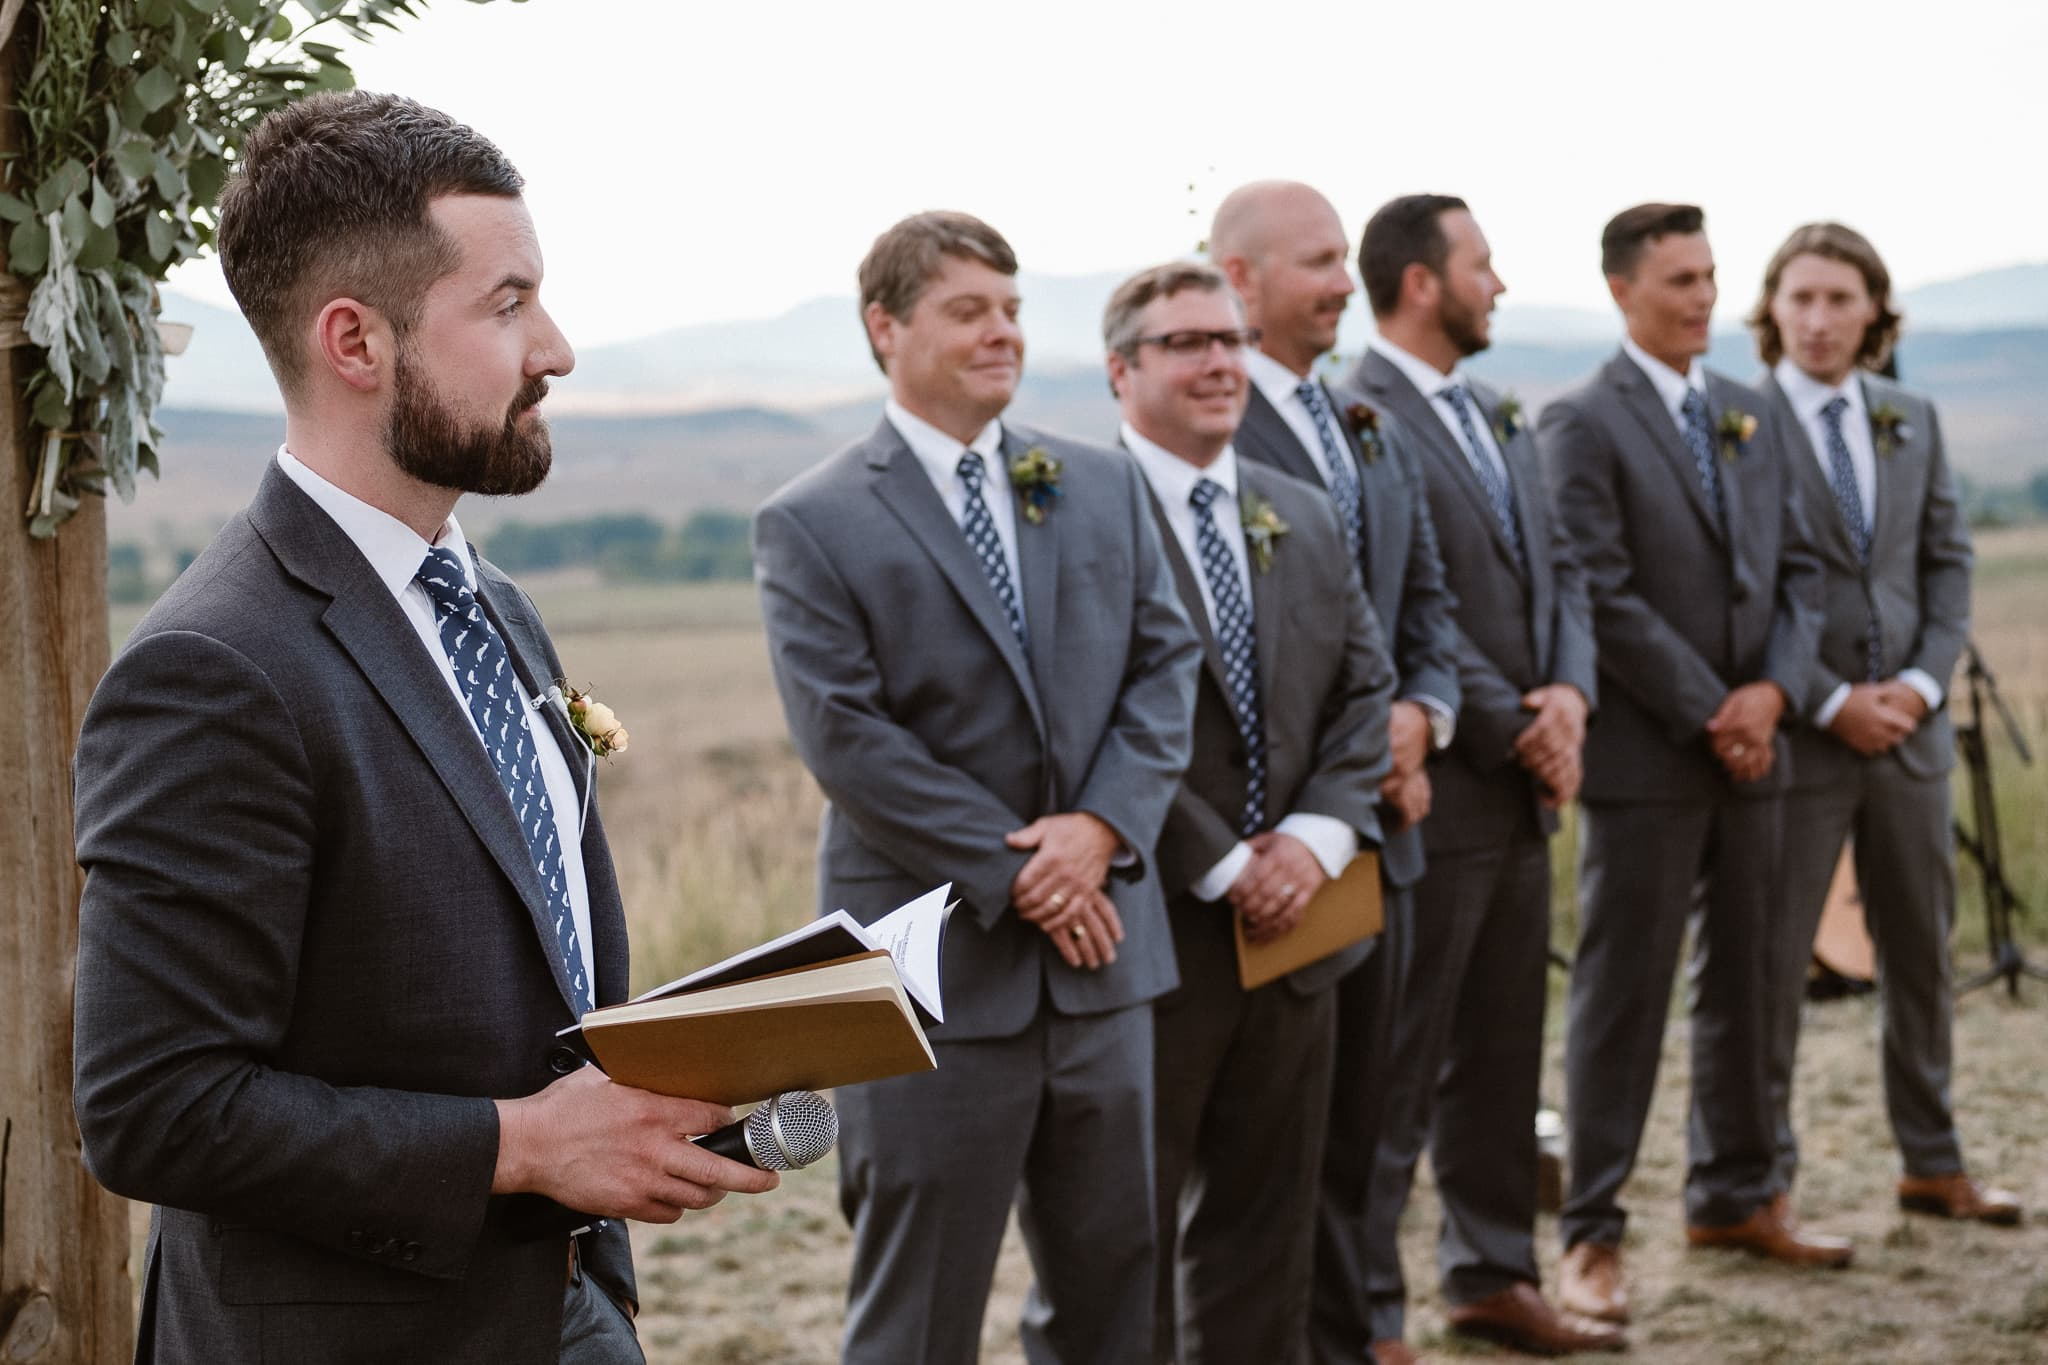 Steamboat Springs wedding photographer, La Joya Dulce wedding, Colorado ranch wedding venues, outdoor wedding ceremony, groomsmen waiting